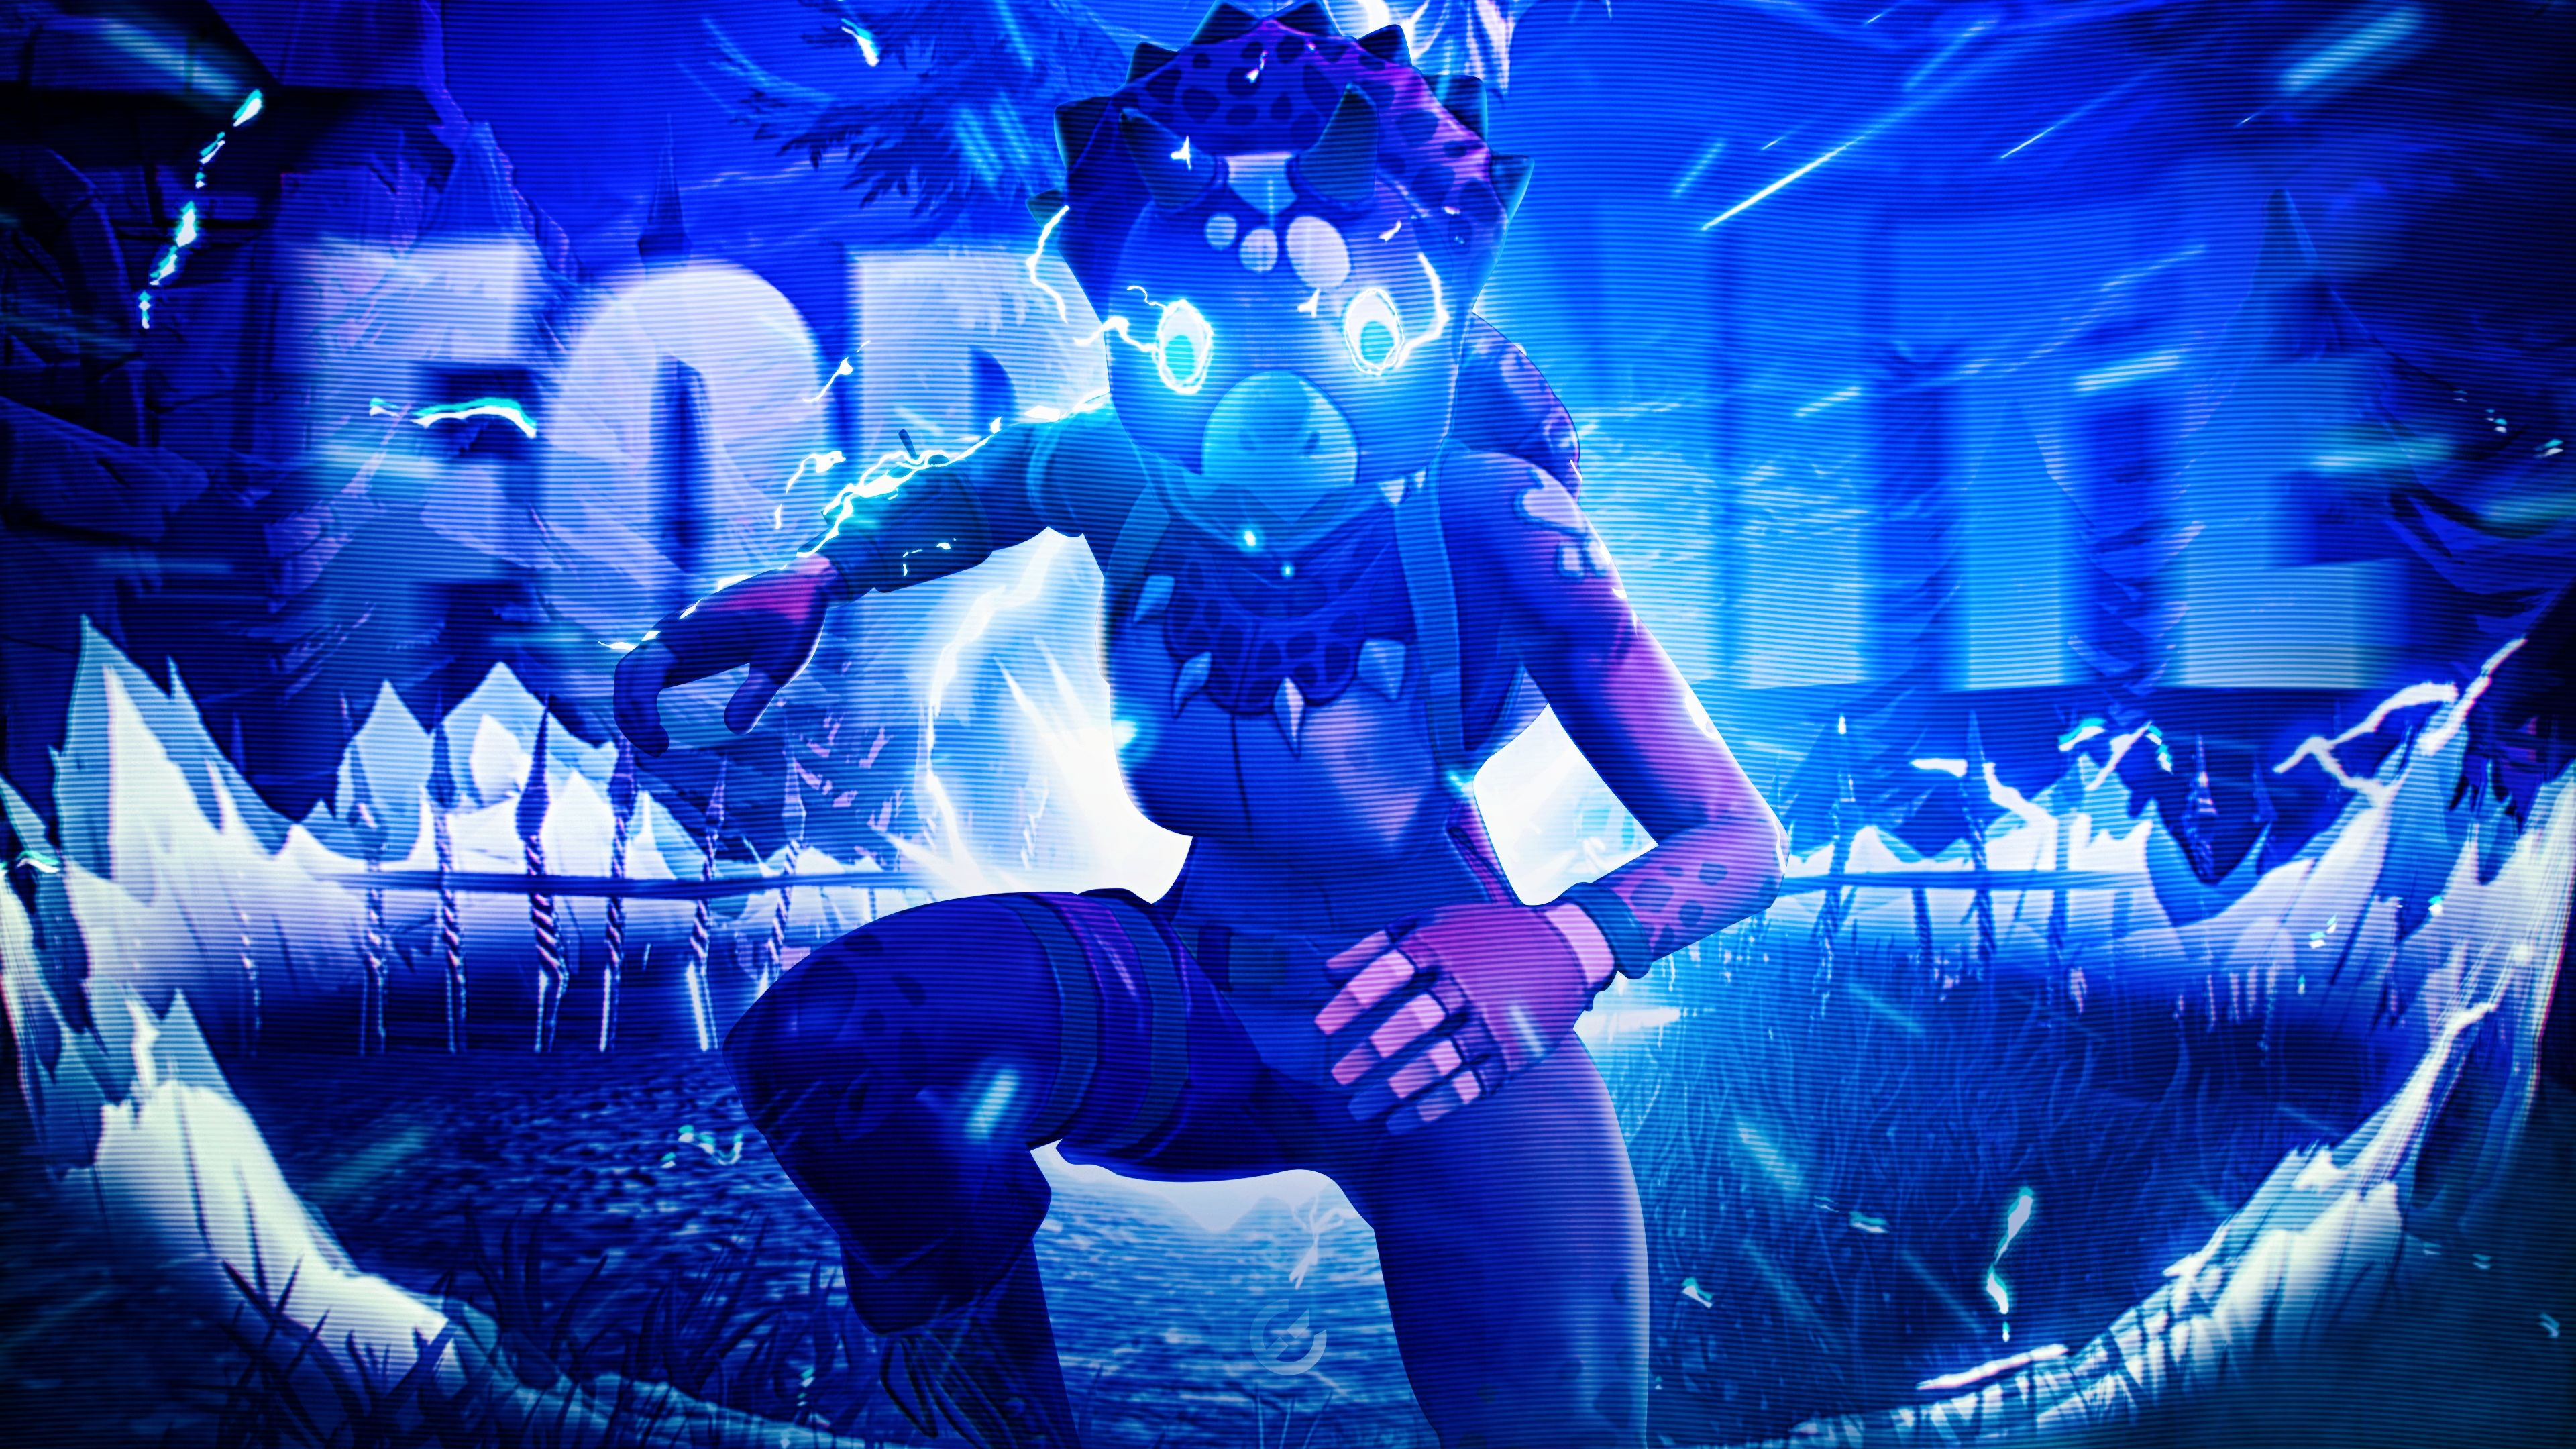 myndanidurstada fyrir fortnite background - fortnite oblivion background